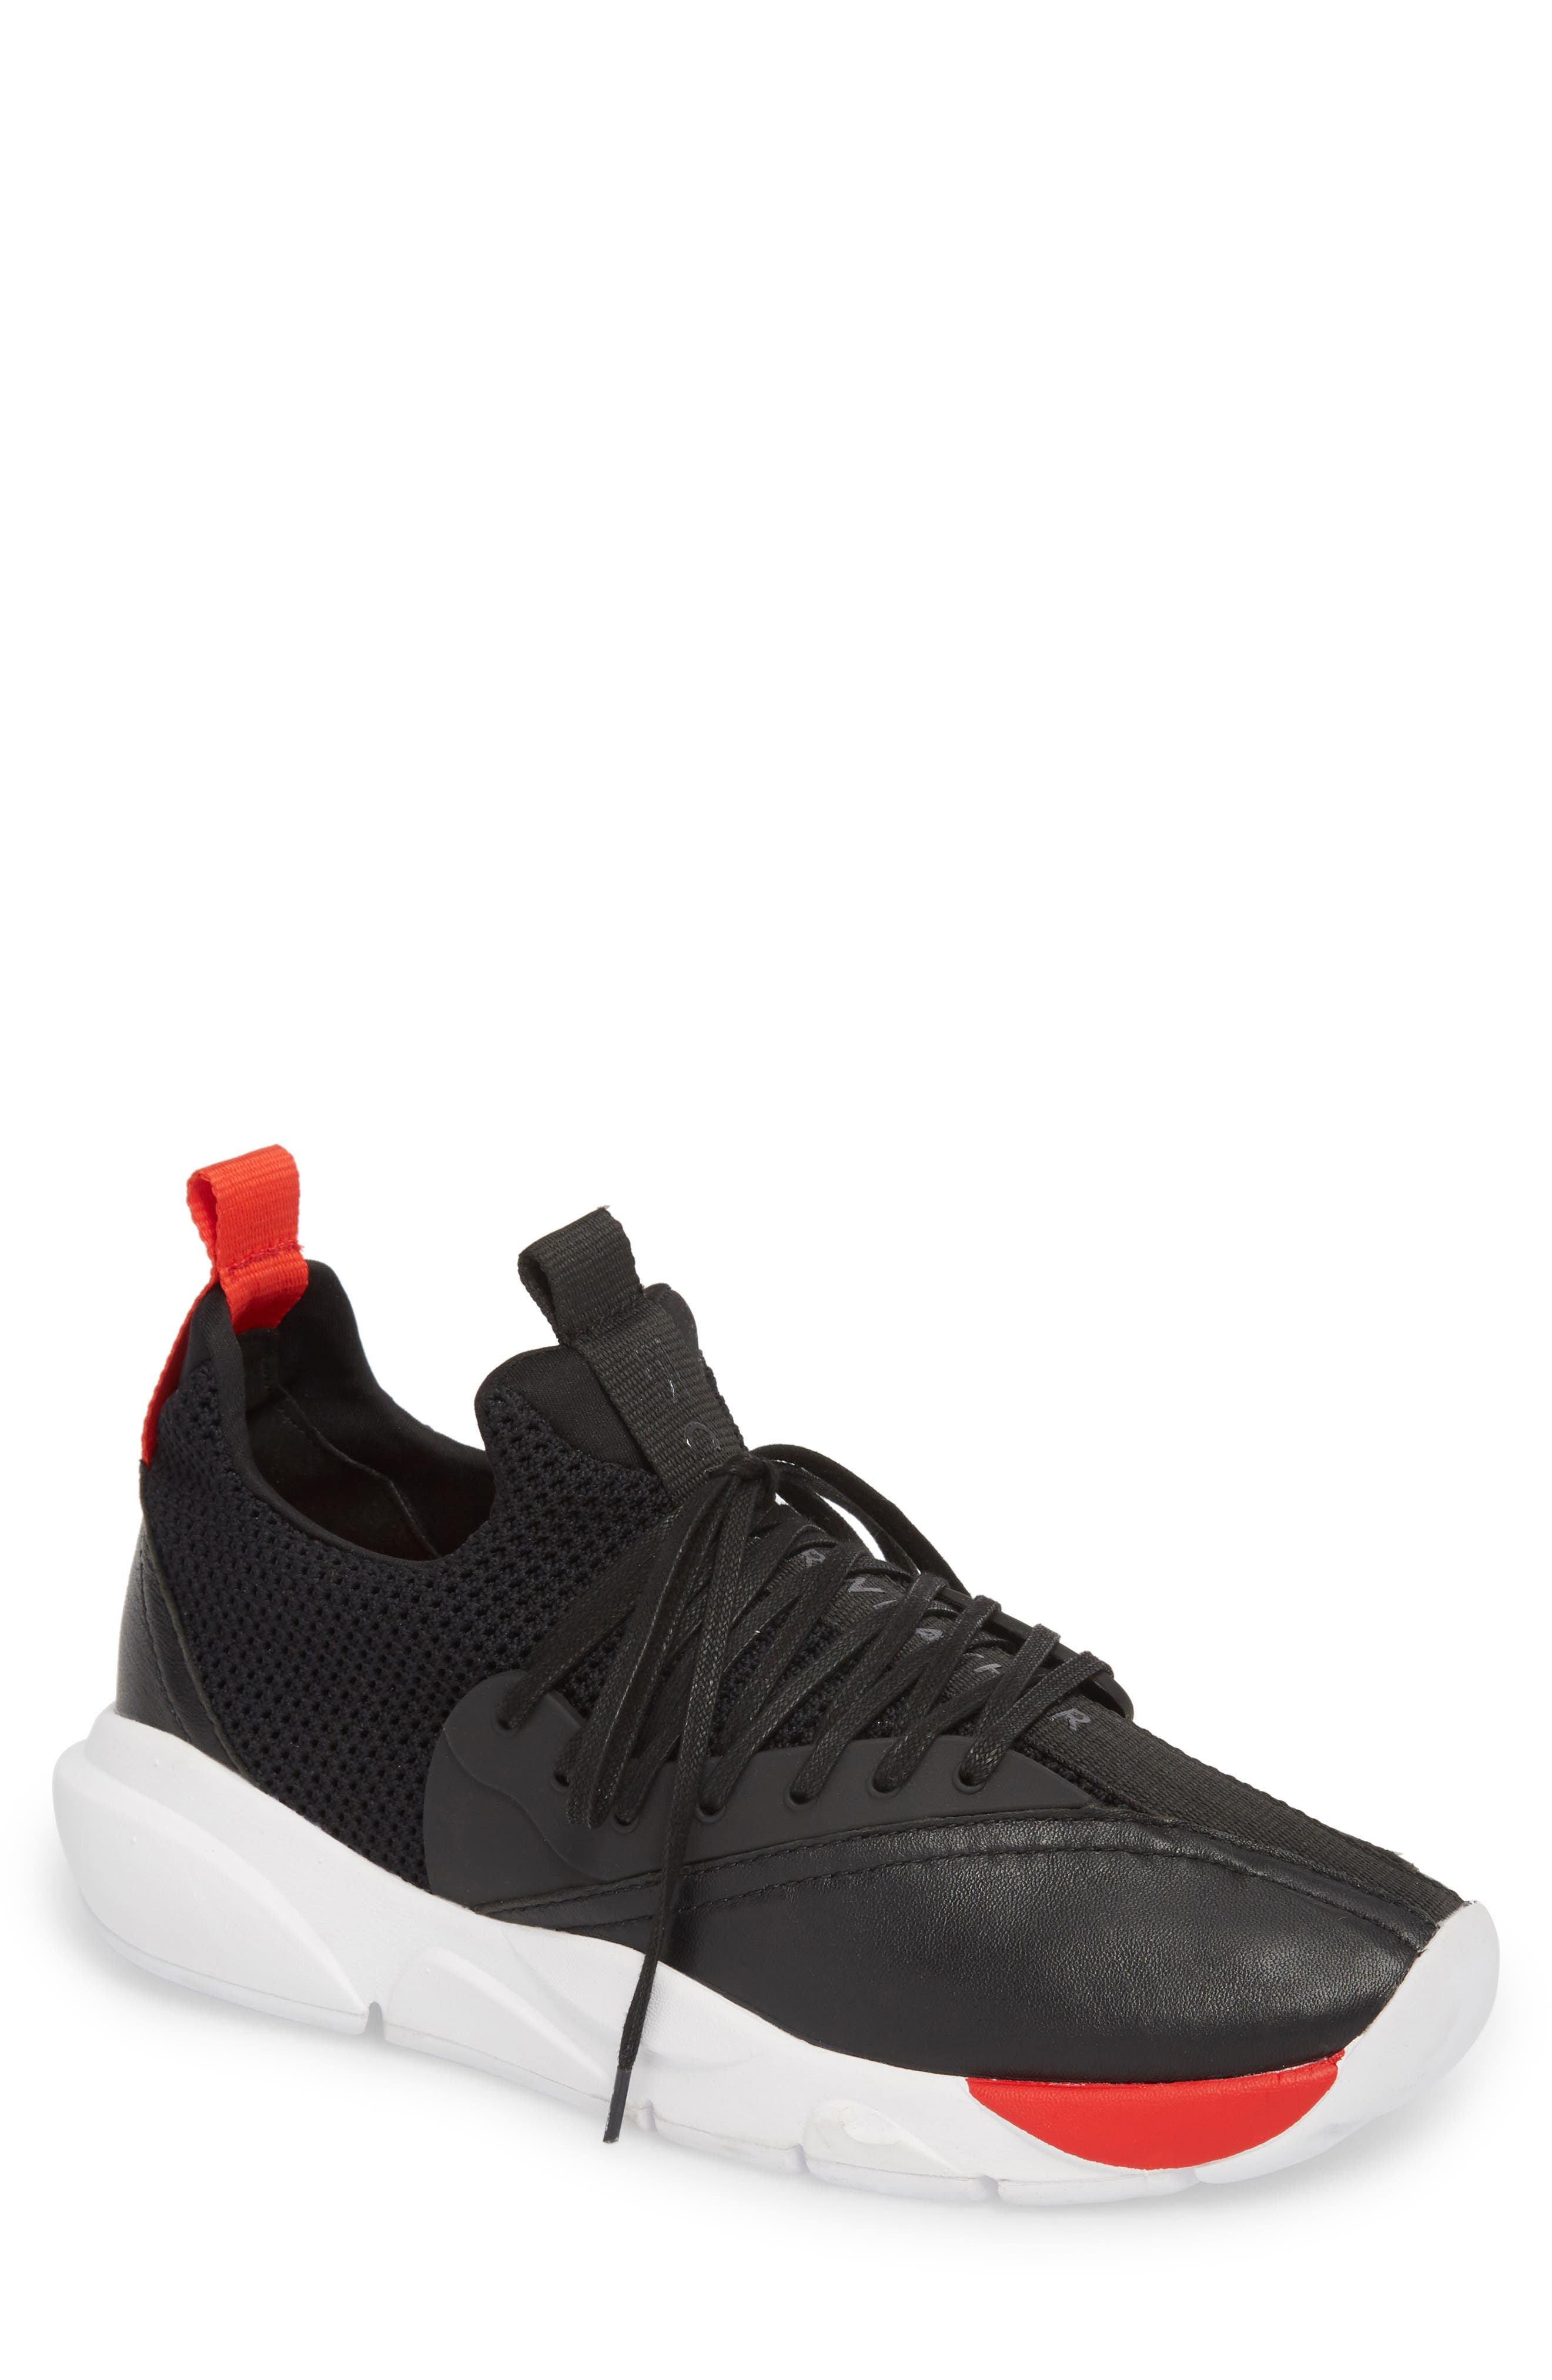 Clear Weather The Cloud Stryke Sneaker,                             Main thumbnail 1, color,                             002